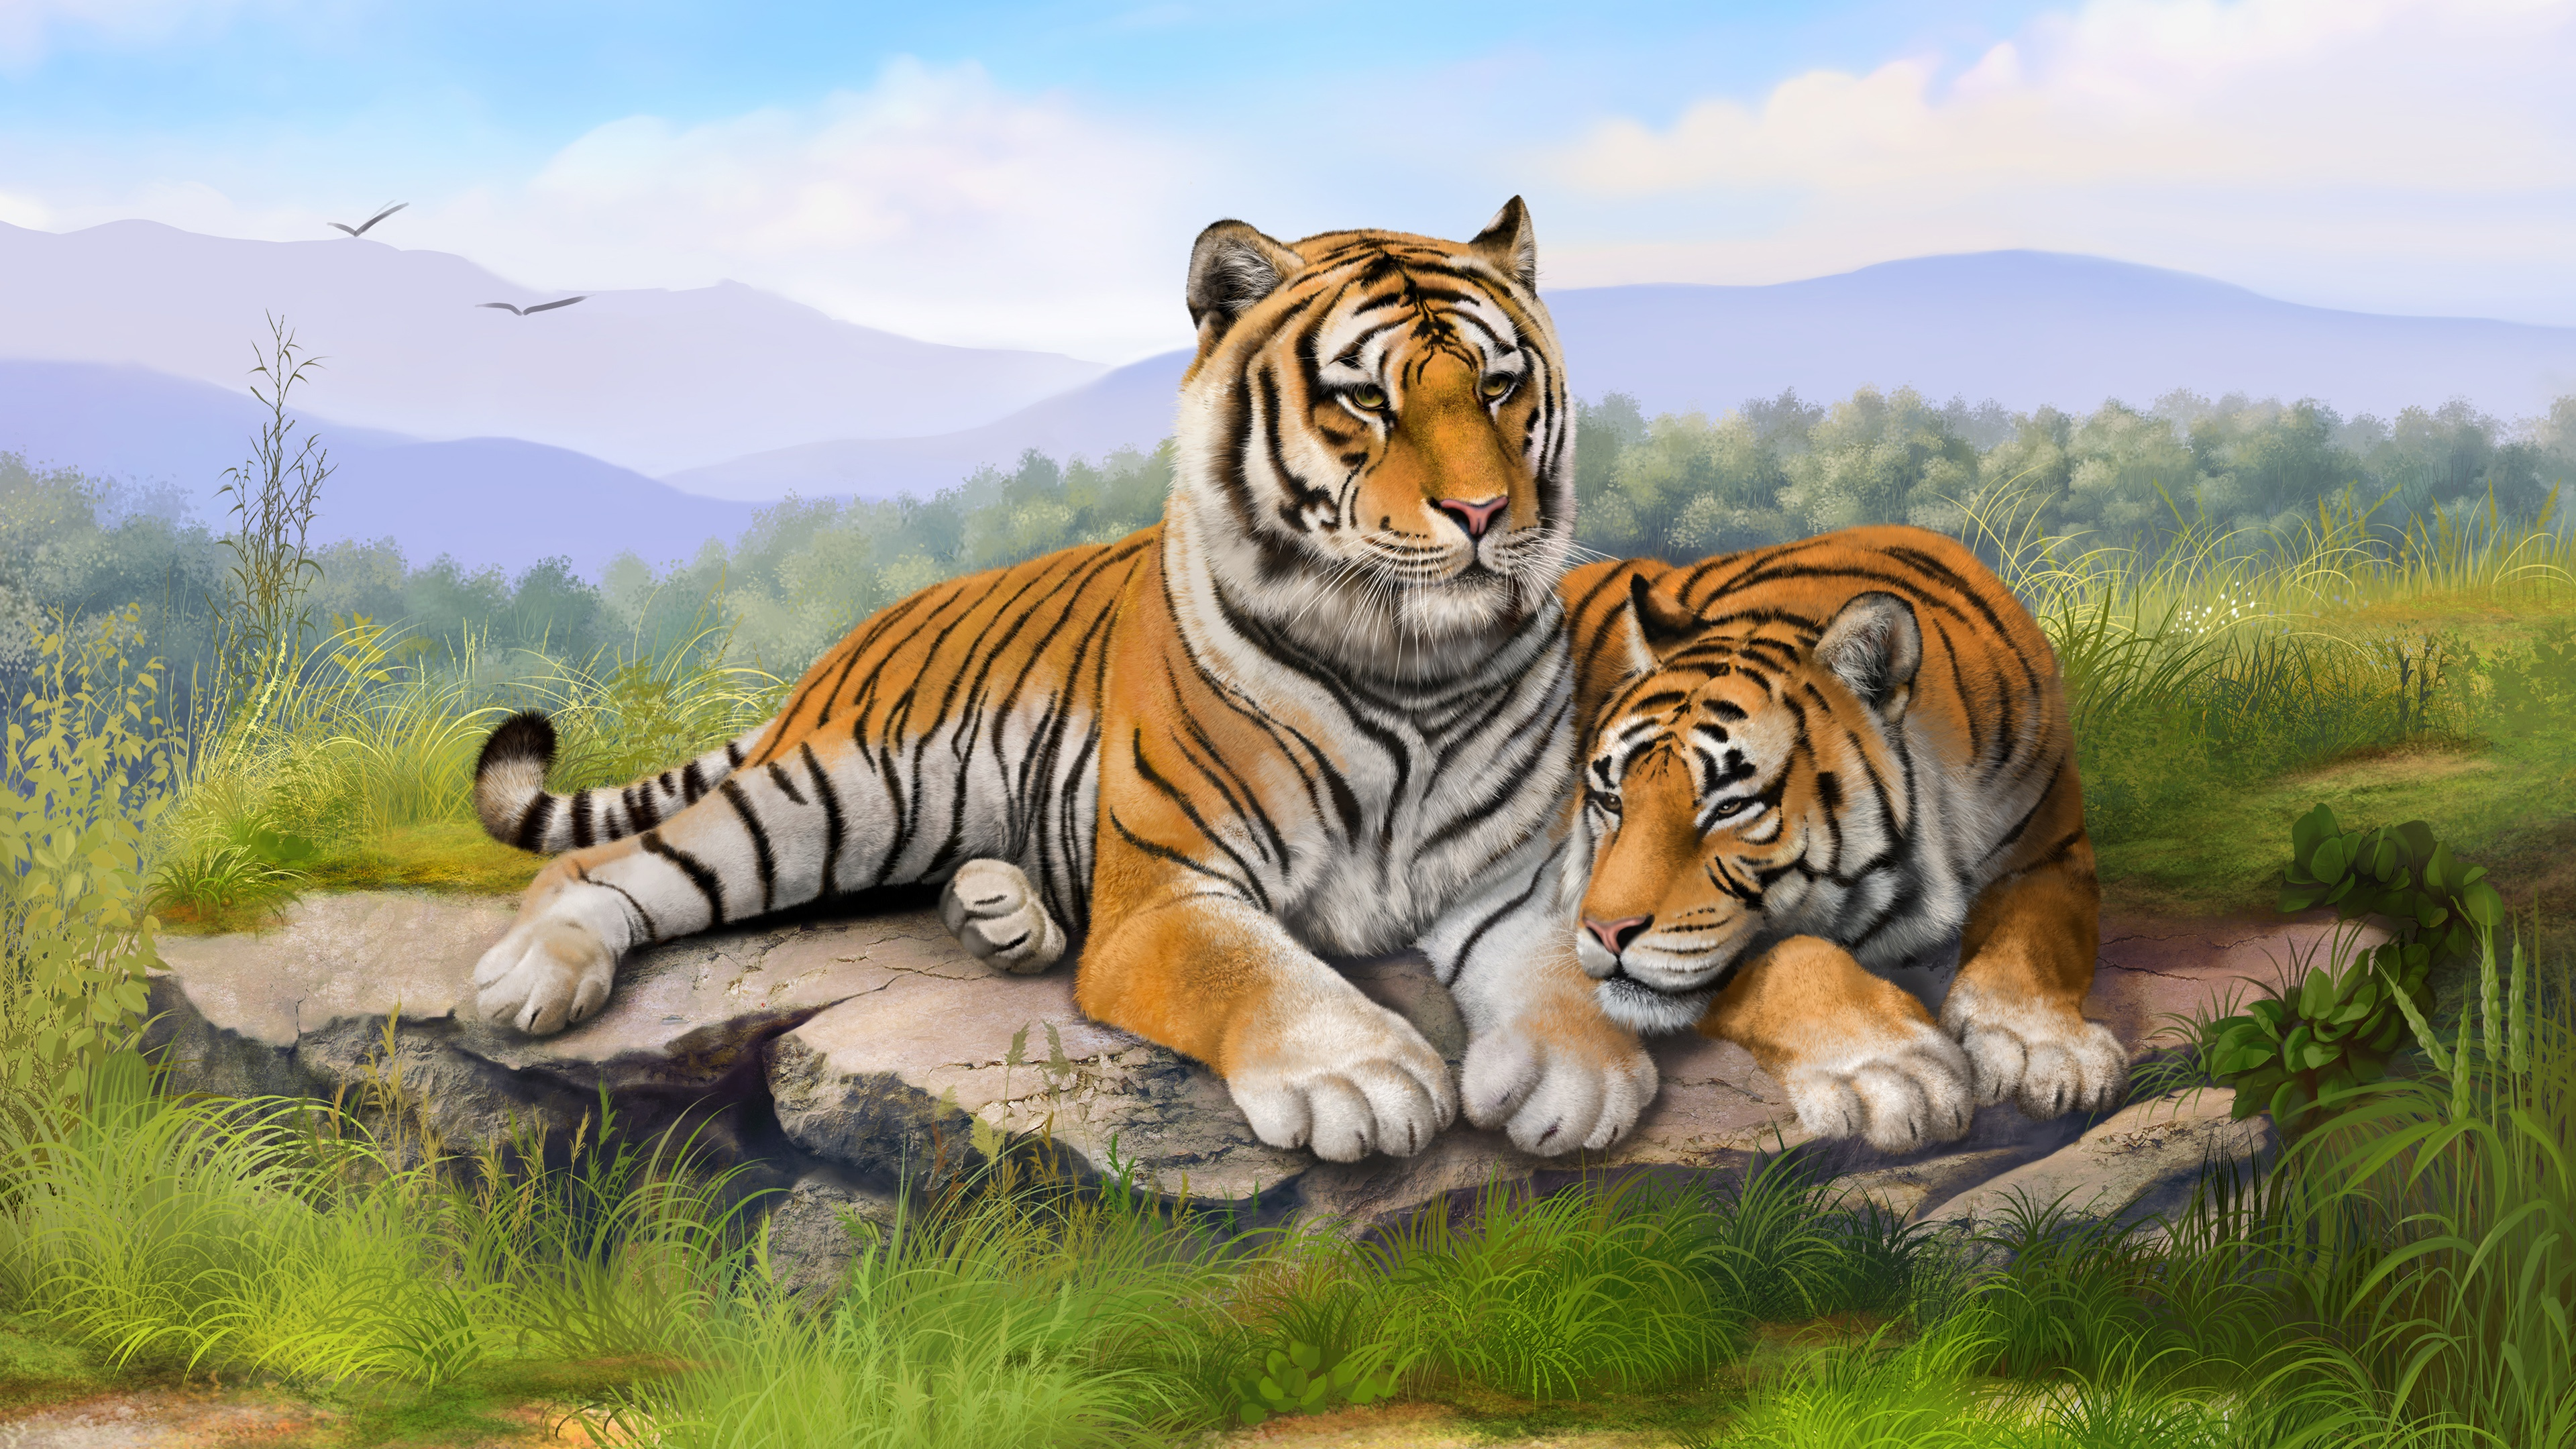 Tigers Art Wallpapers HD Wallpapers 3840x2160